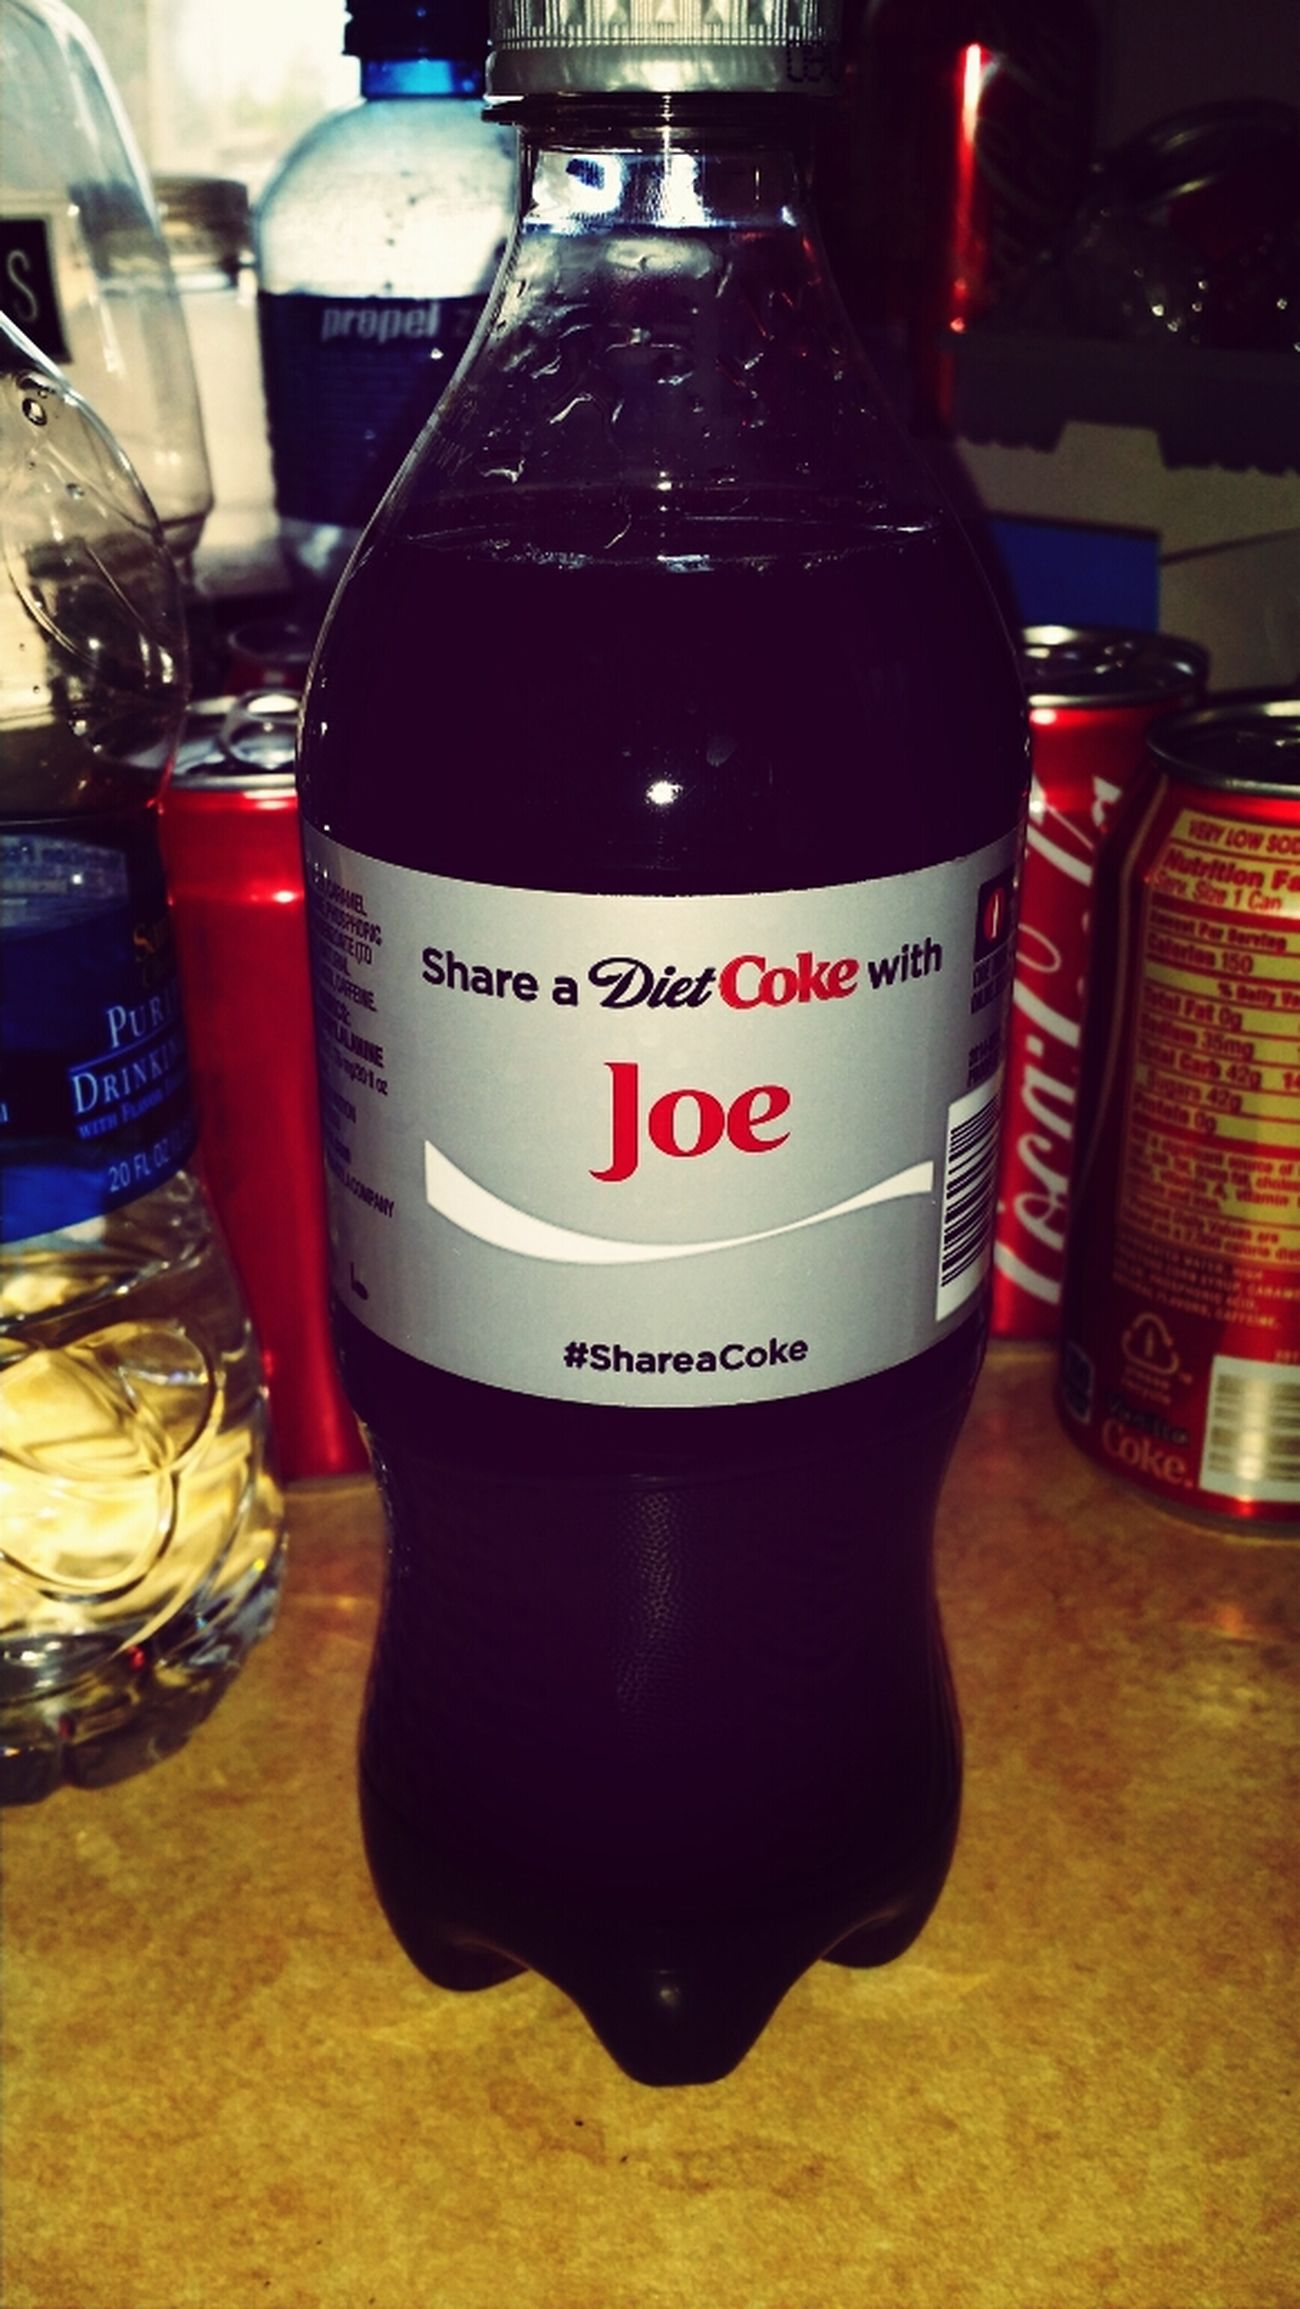 Joe's GALAXYS3 Coke Bottles With Your Name